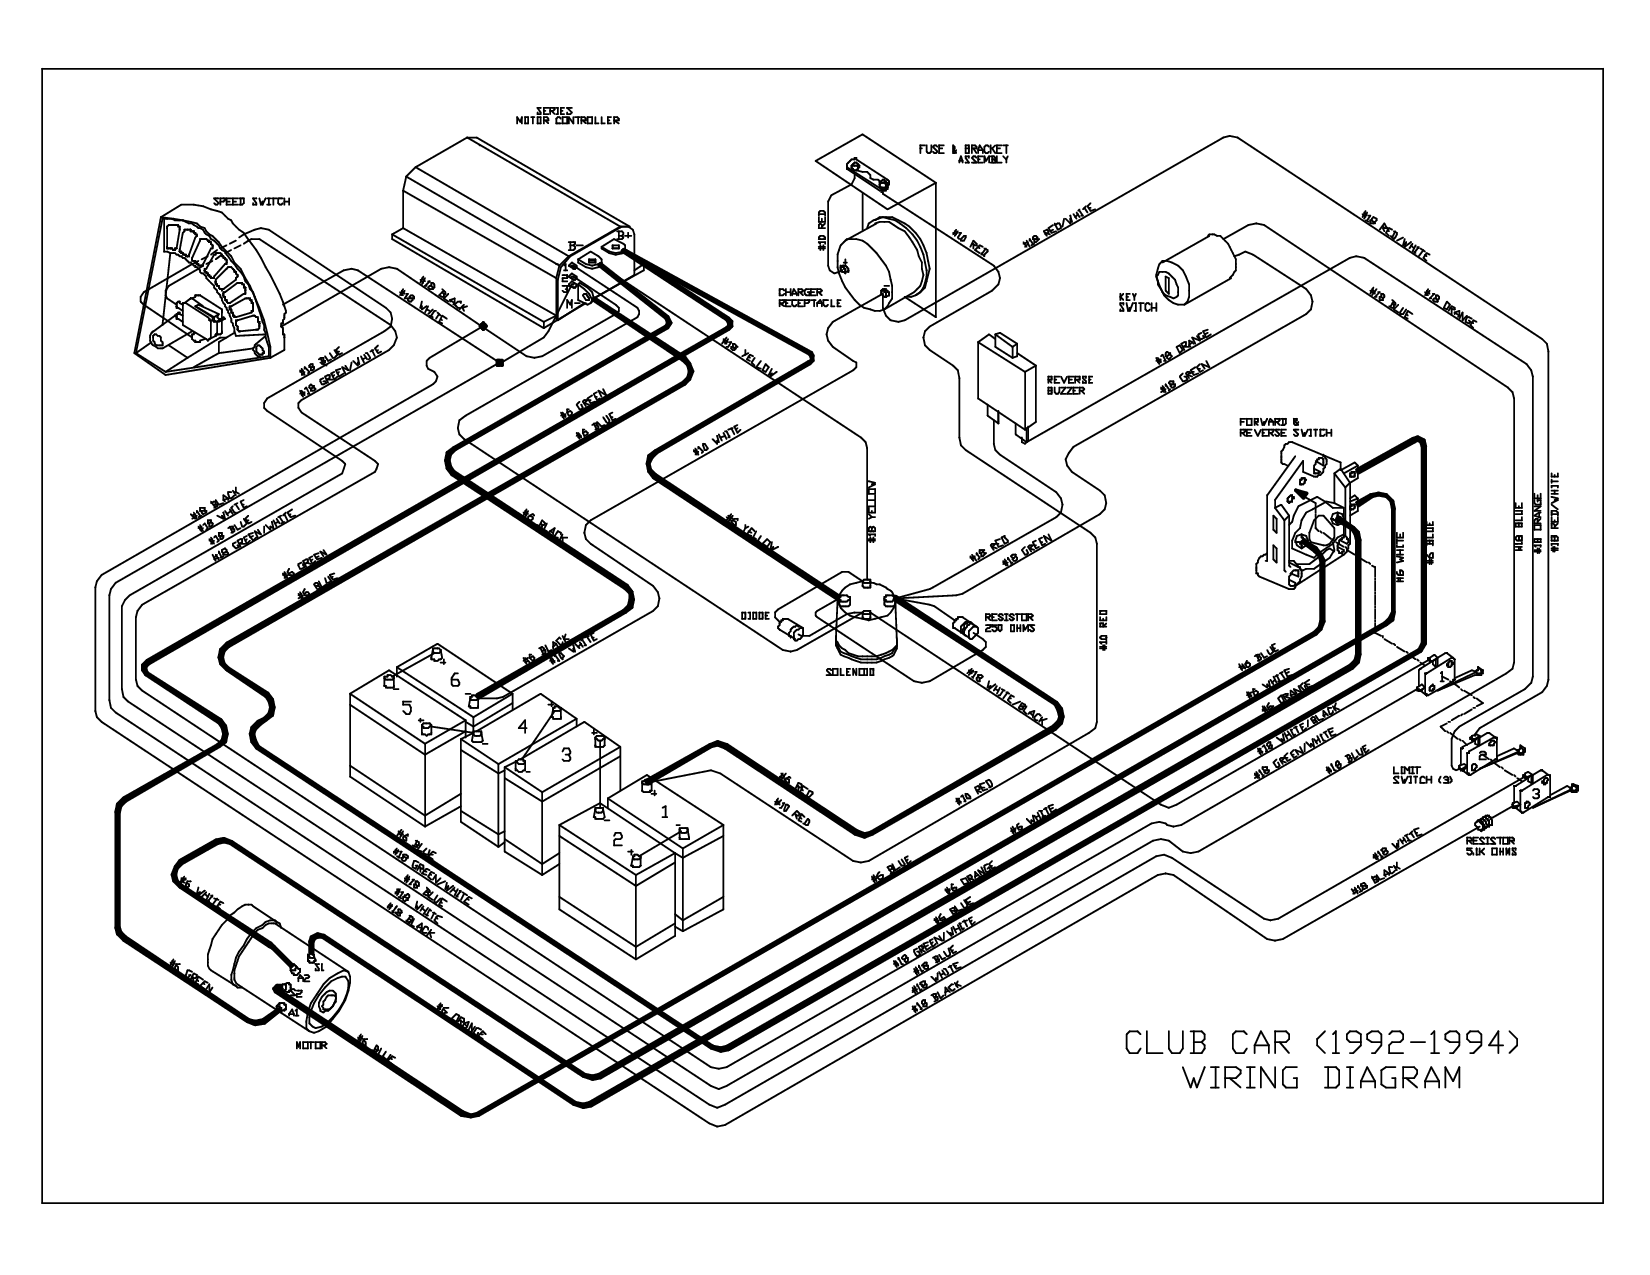 [SCHEMATICS_48DE]  1995 club car wiring diagram | CLUB CAR (1992-1994) WIRING DIAGRAM |  Electric golf cart, Club car golf cart, Ezgo golf cart | 03 Club Car Wiring Diagram |  | Pinterest